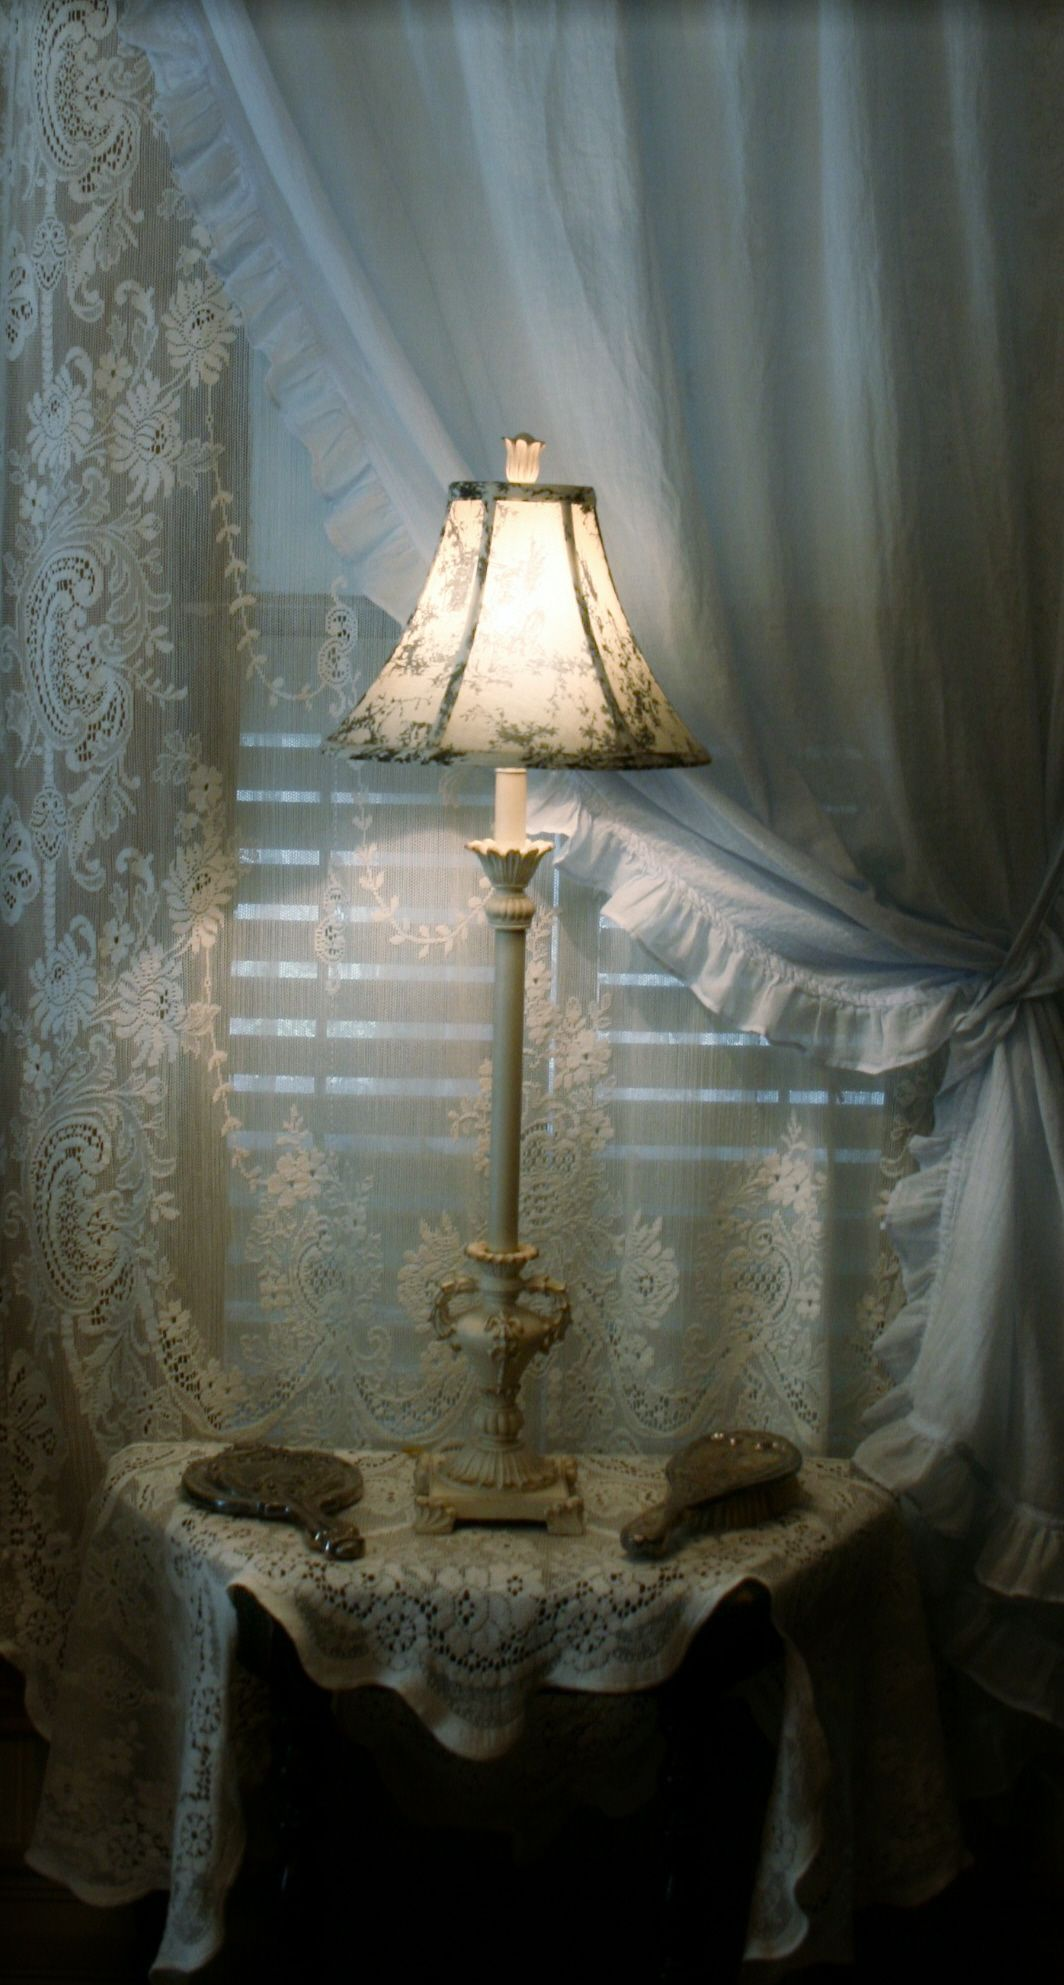 Scottish Lace And Simply Shabby Chic Curtains Home Sweet Home Pinterest Shabby Chic